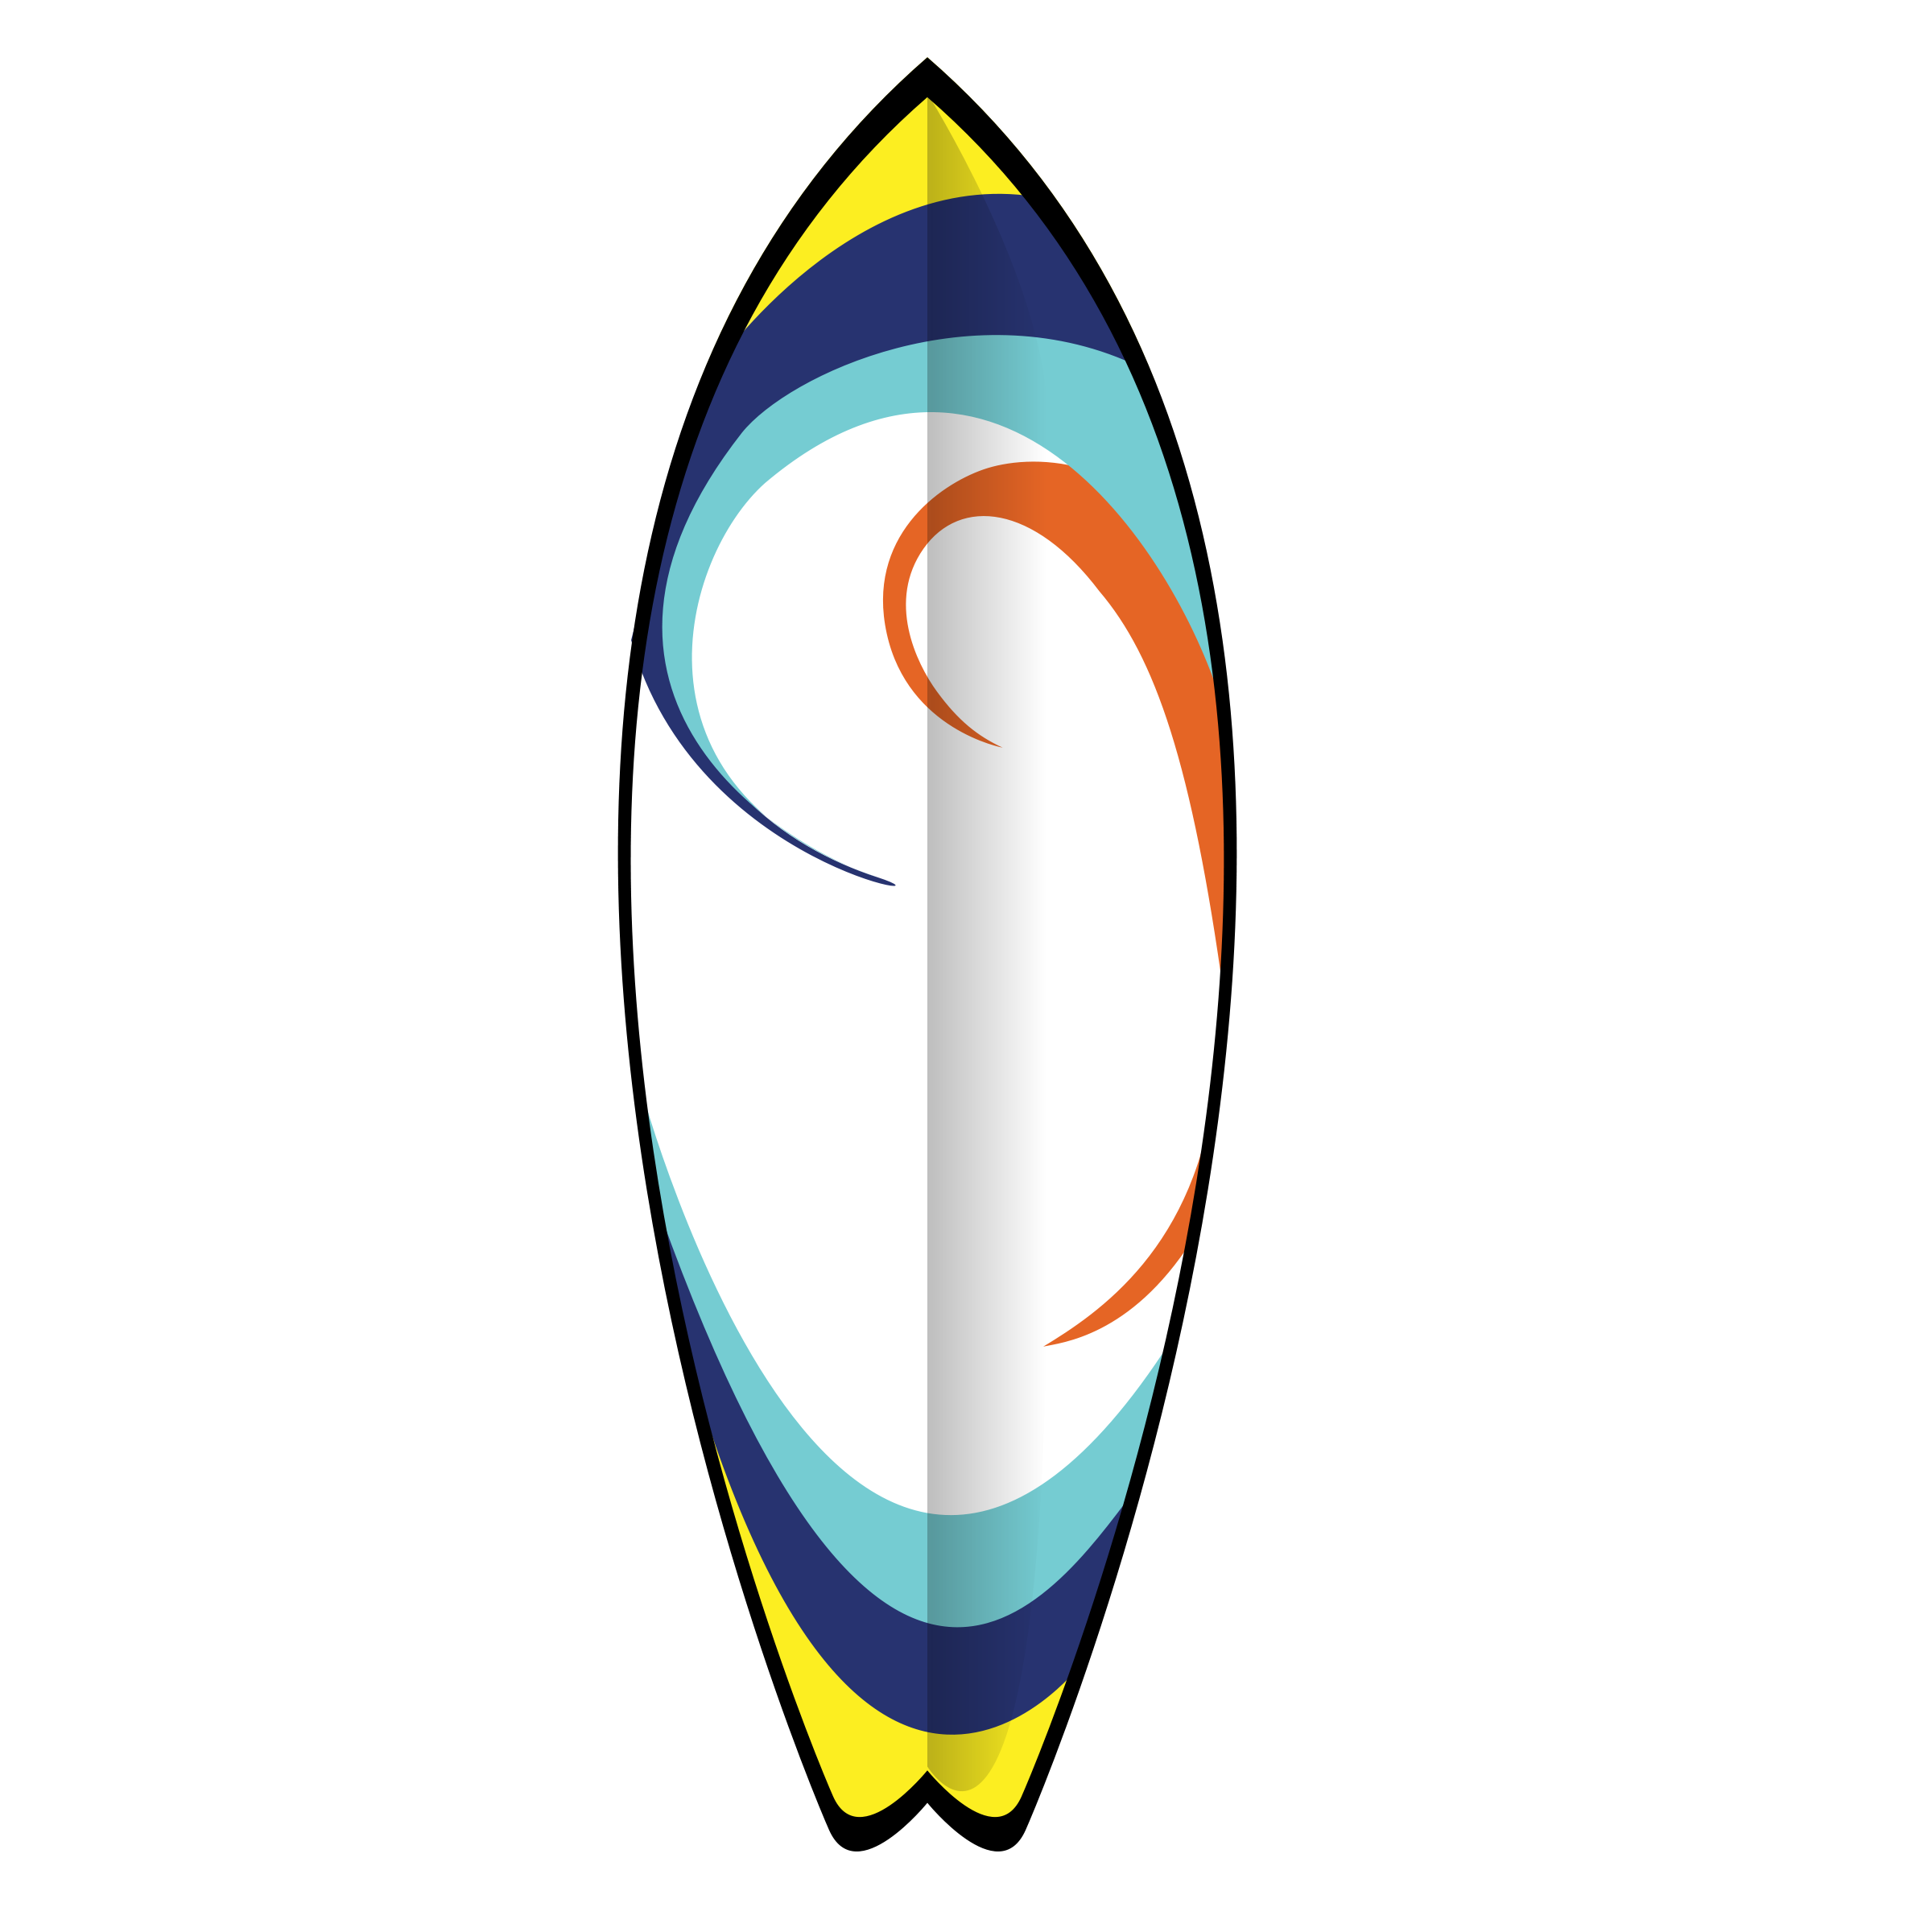 Clipart arrow made from surfboard svg freeuse library Disney surfboard clipart - ClipartFest svg freeuse library